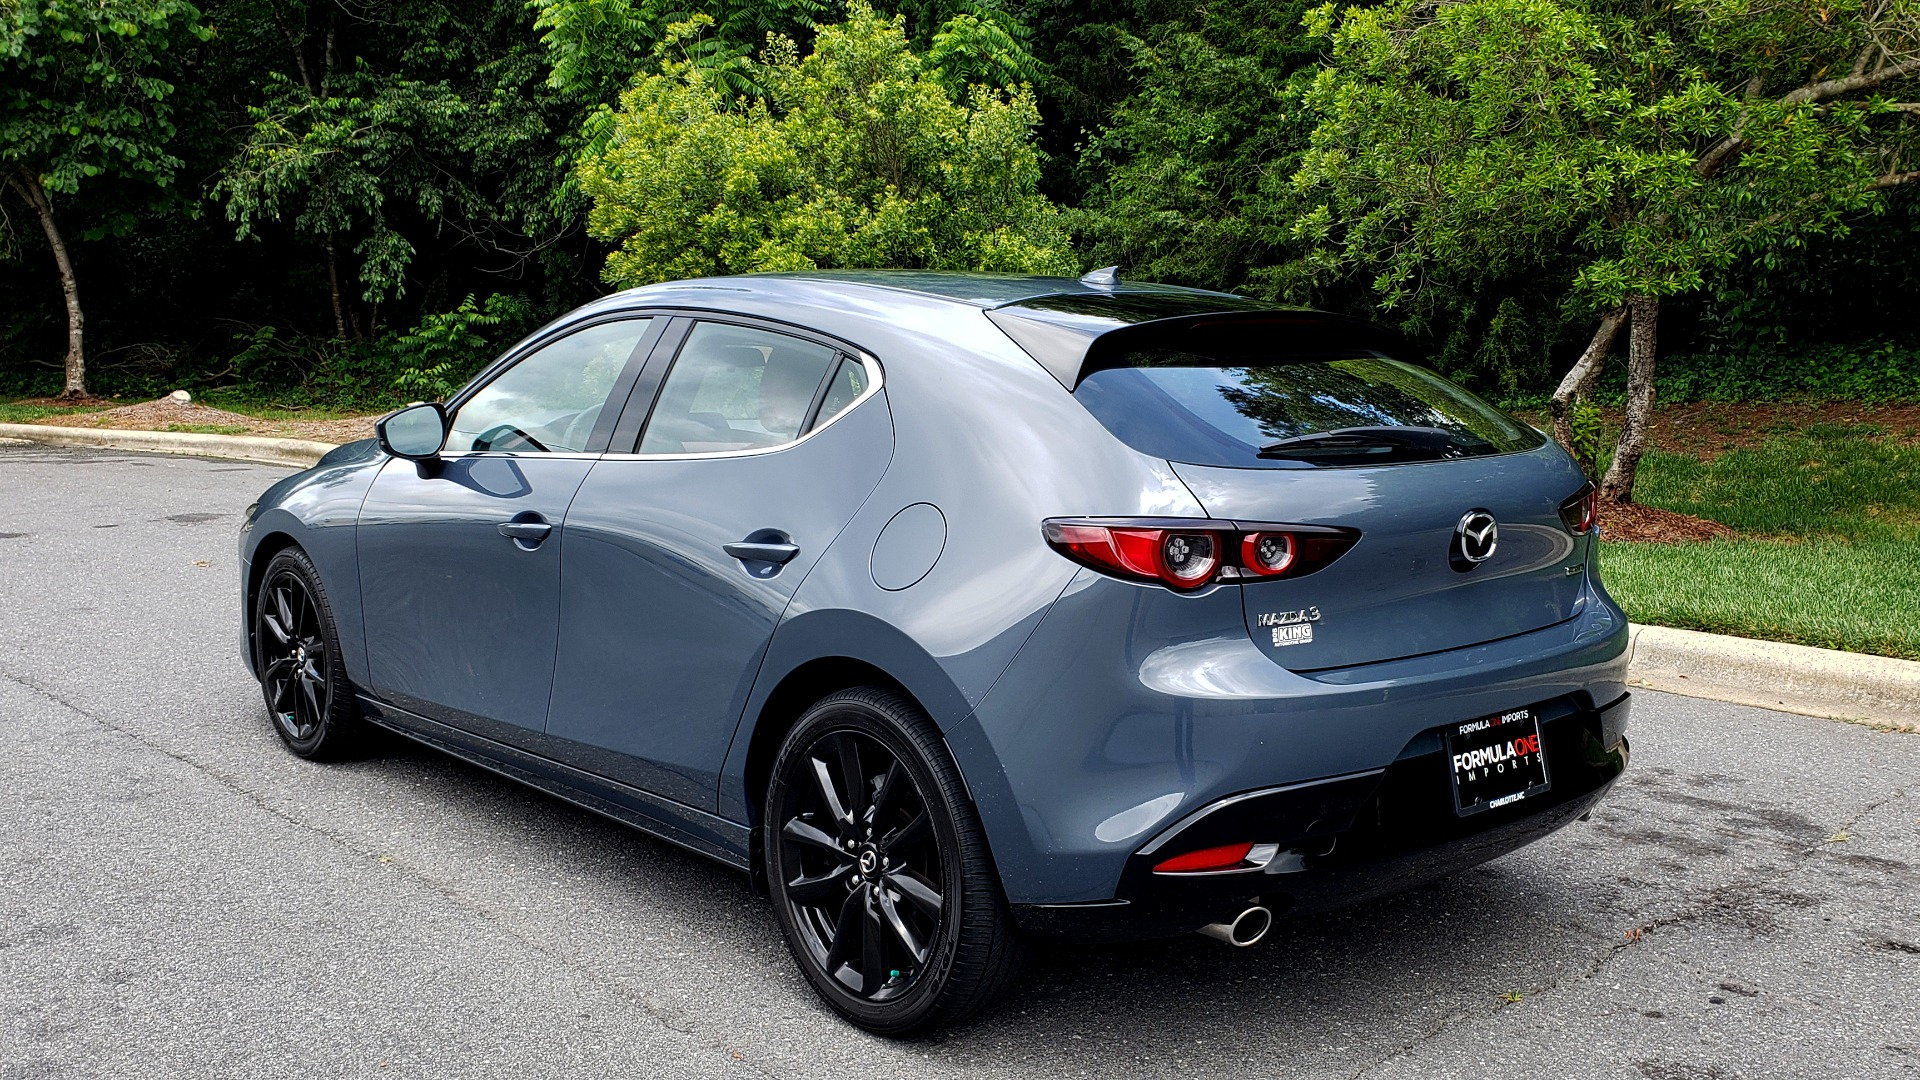 Used 2019 Mazda MAZDA3 HATCHBACK PREMIUM PKG / AUTO / 18IN BLACK ALLOY WHEELS / BOSE / LEATHER for sale Sold at Formula Imports in Charlotte NC 28227 3